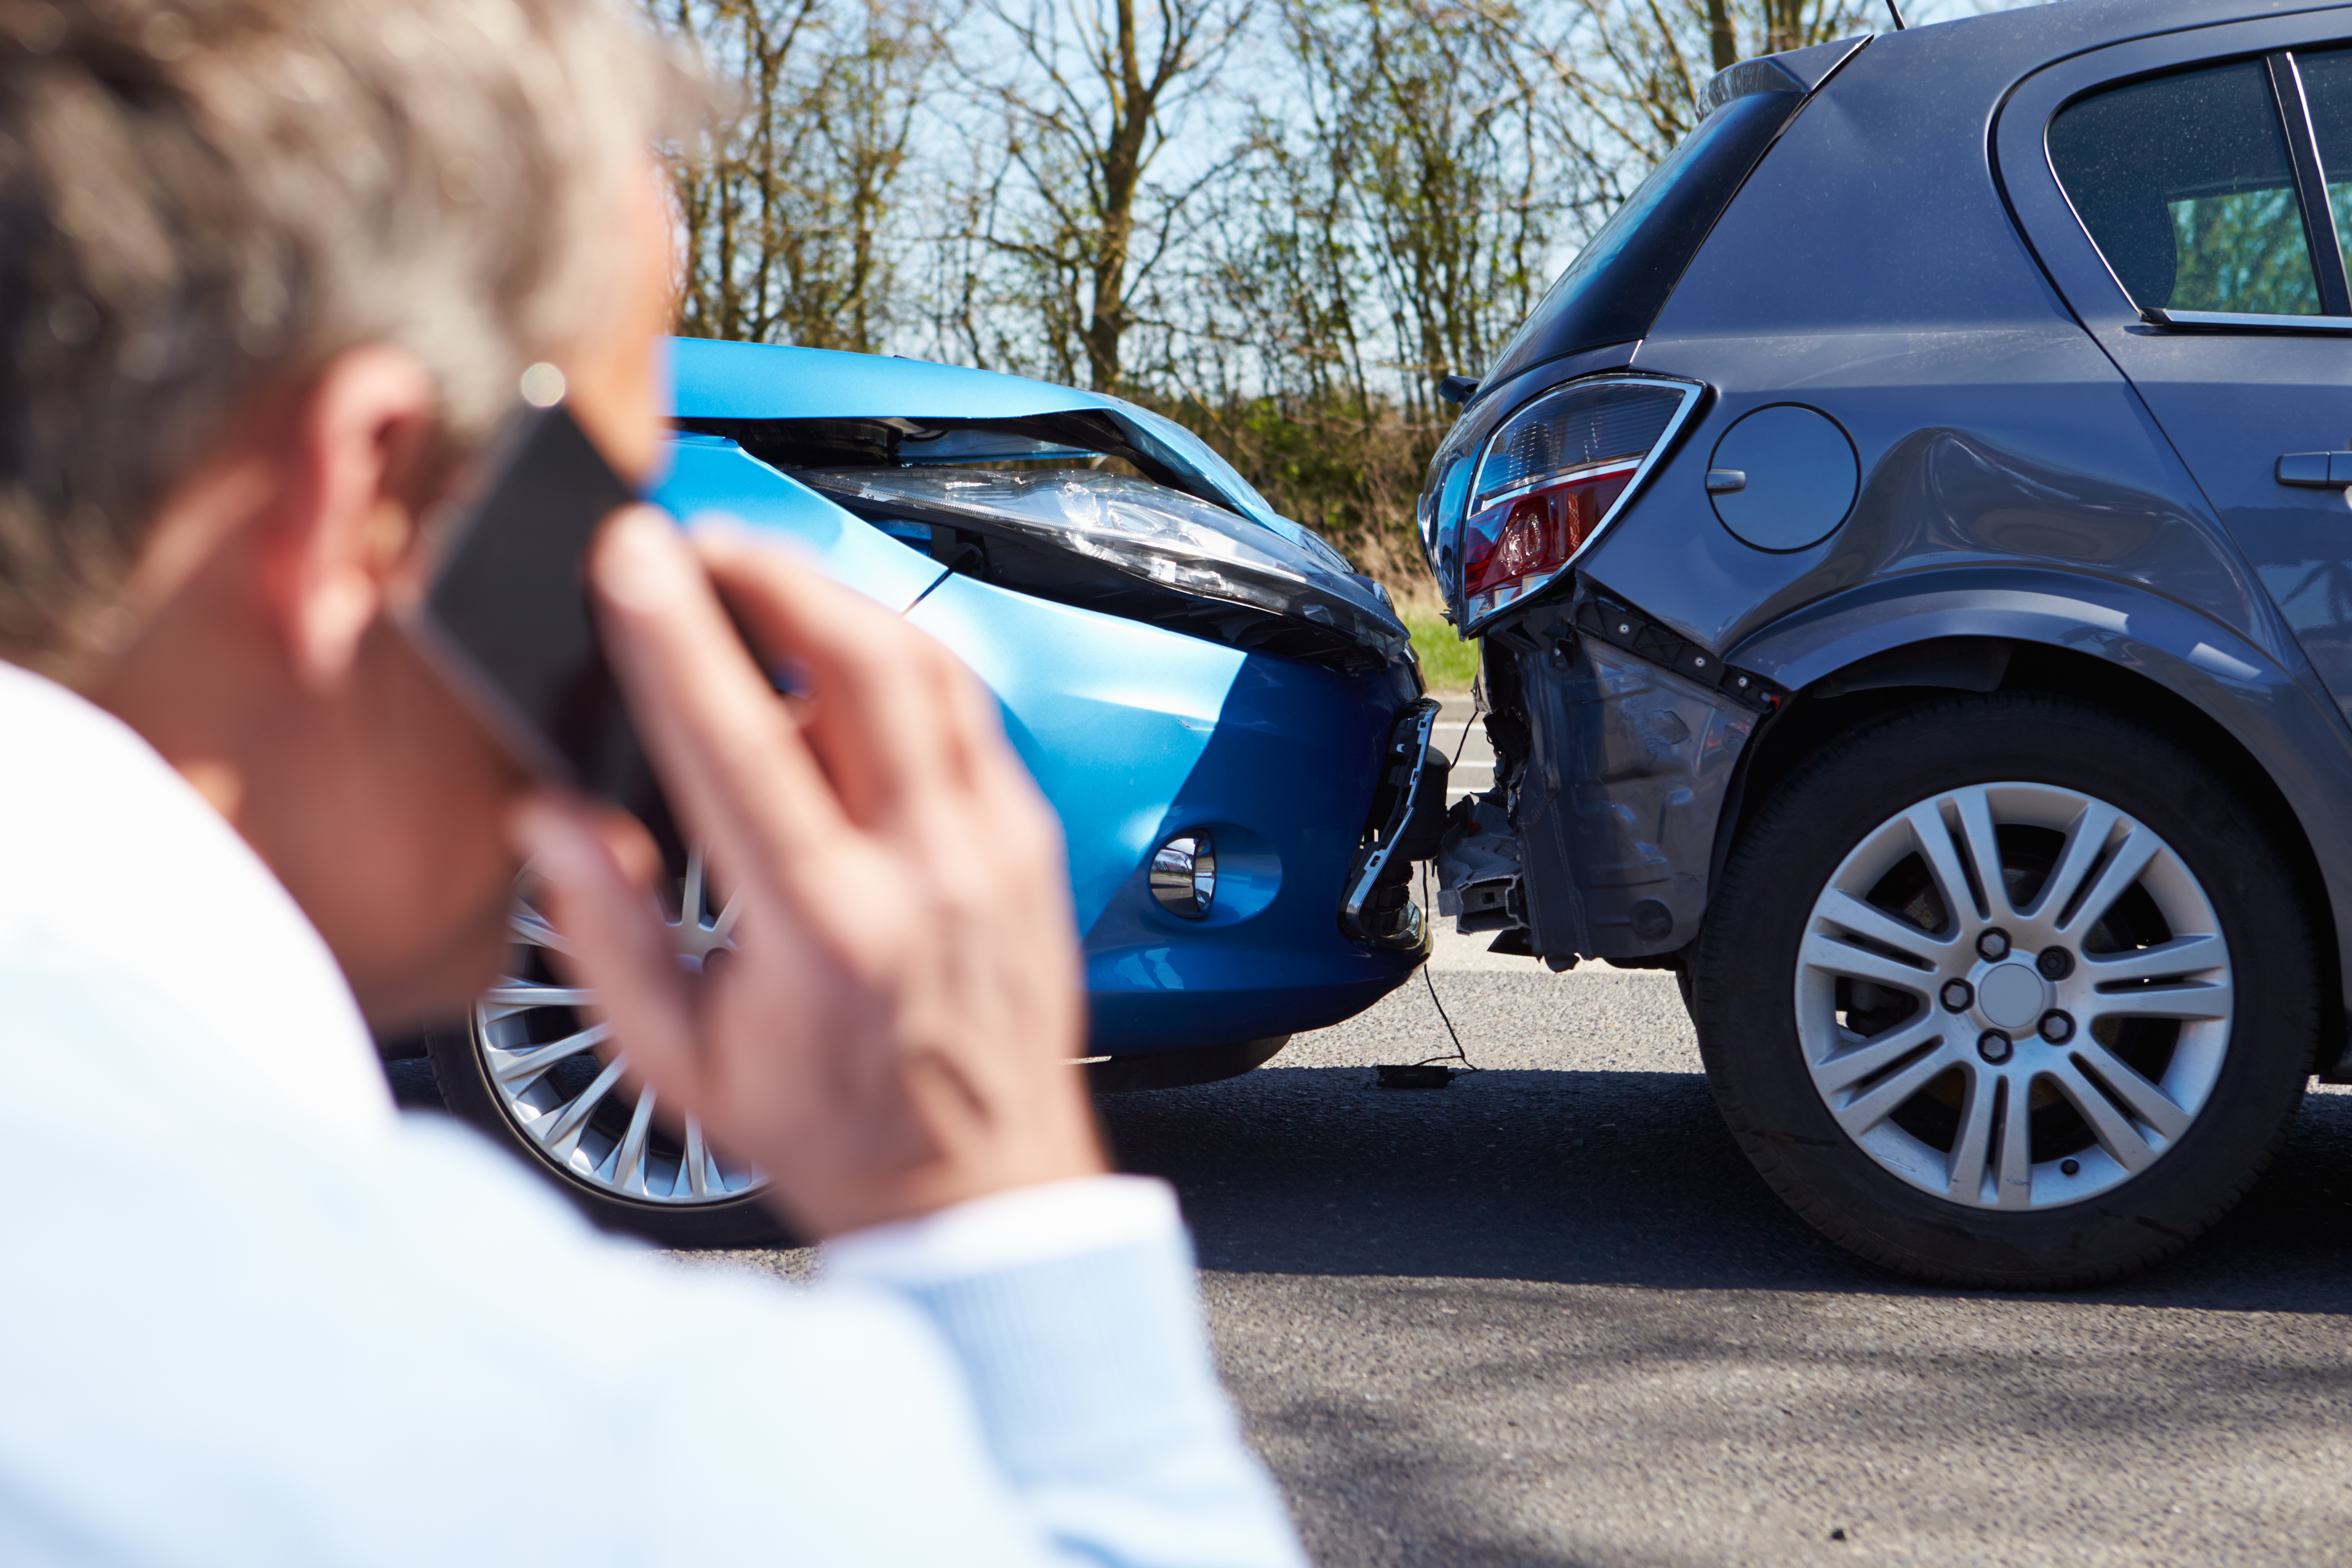 5 Things to Consider After an Auto Accident